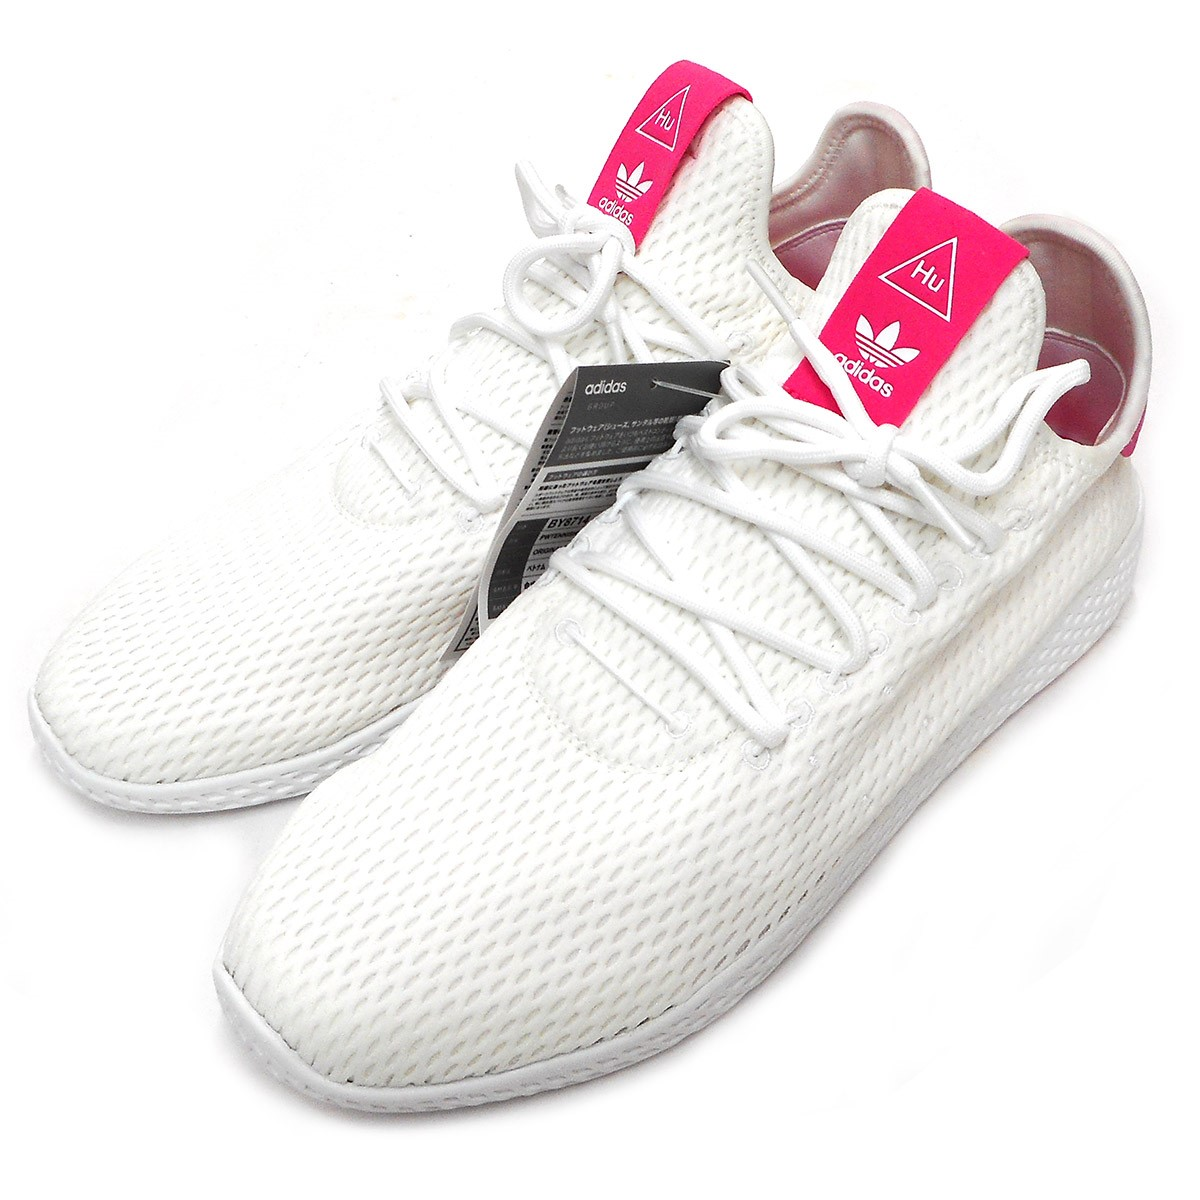 【中古】adidas originals × Pharrell Williams TENNIS HU PREMEKNIT SHOES スニーカー 【送料無料】 【001512】 【KIND1550】